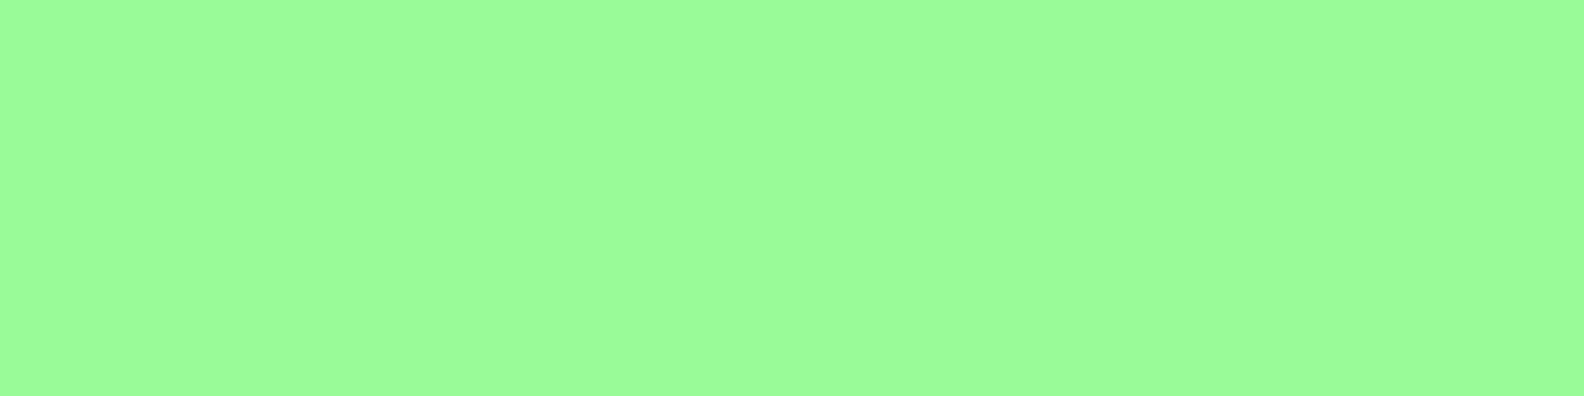 1584x396 Pale Green Solid Color Background